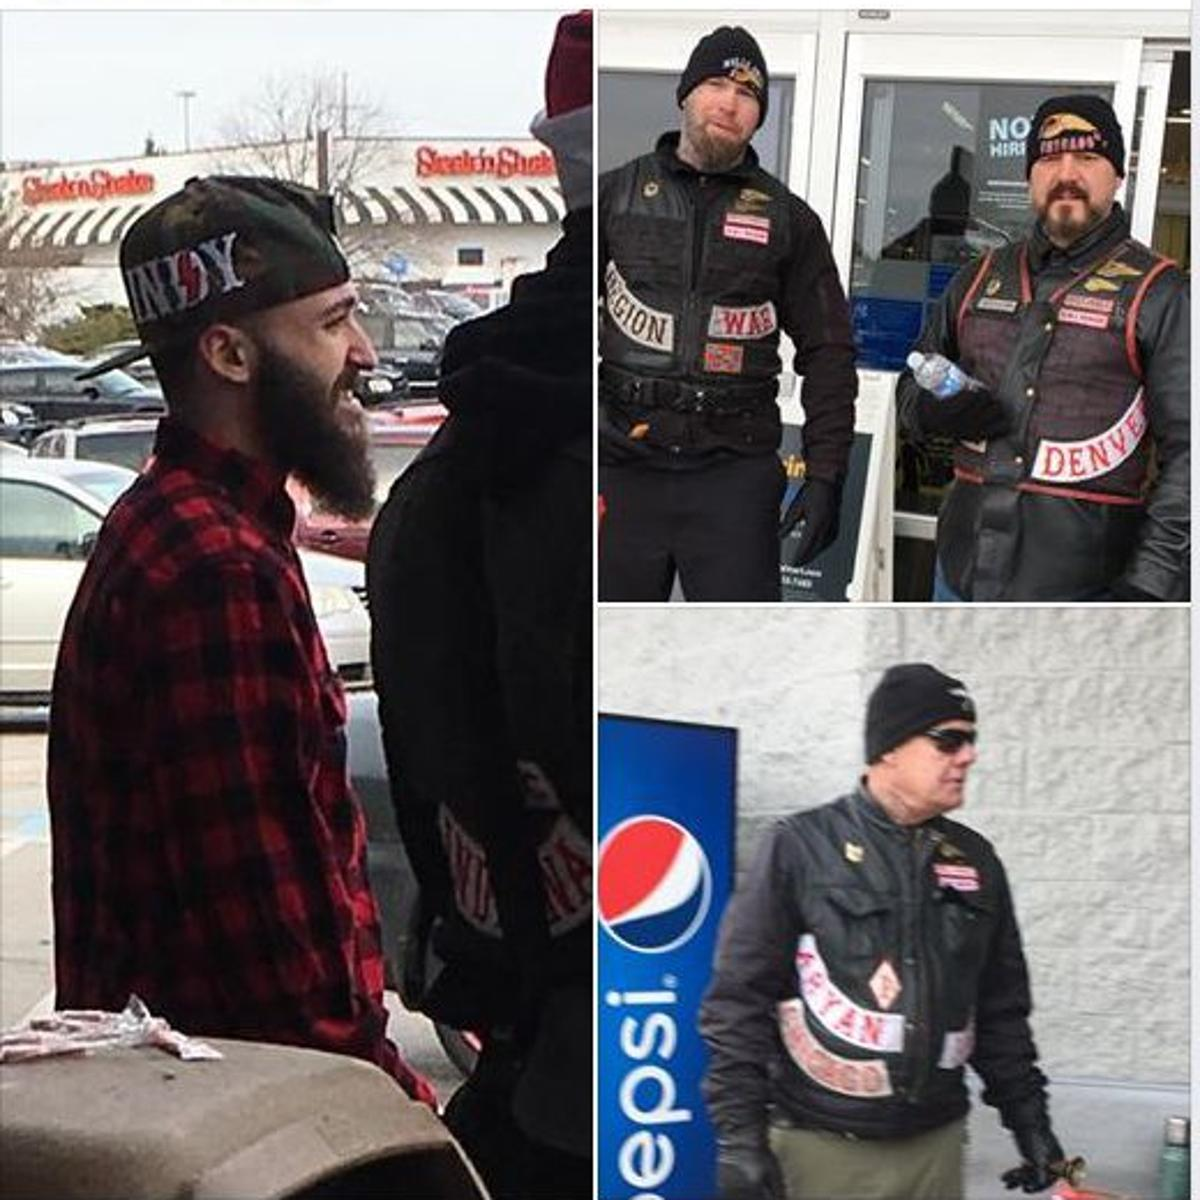 Hells Angels bell ringers won't be allowed to volunteer